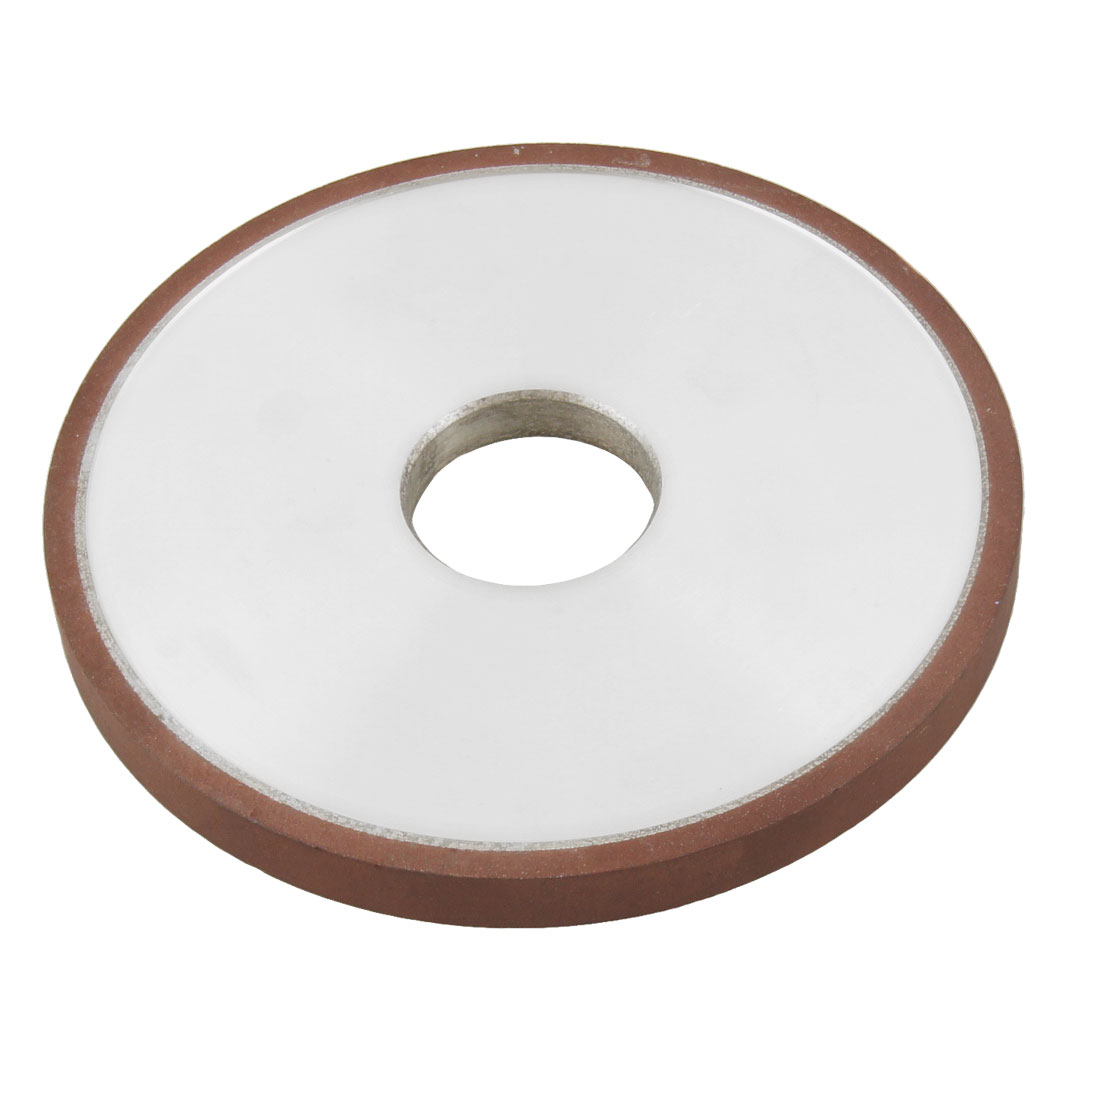 100mm x 20mm 150 Grit 75% Resin Bond Plain Type Diamond Grinding Wheel Grinder